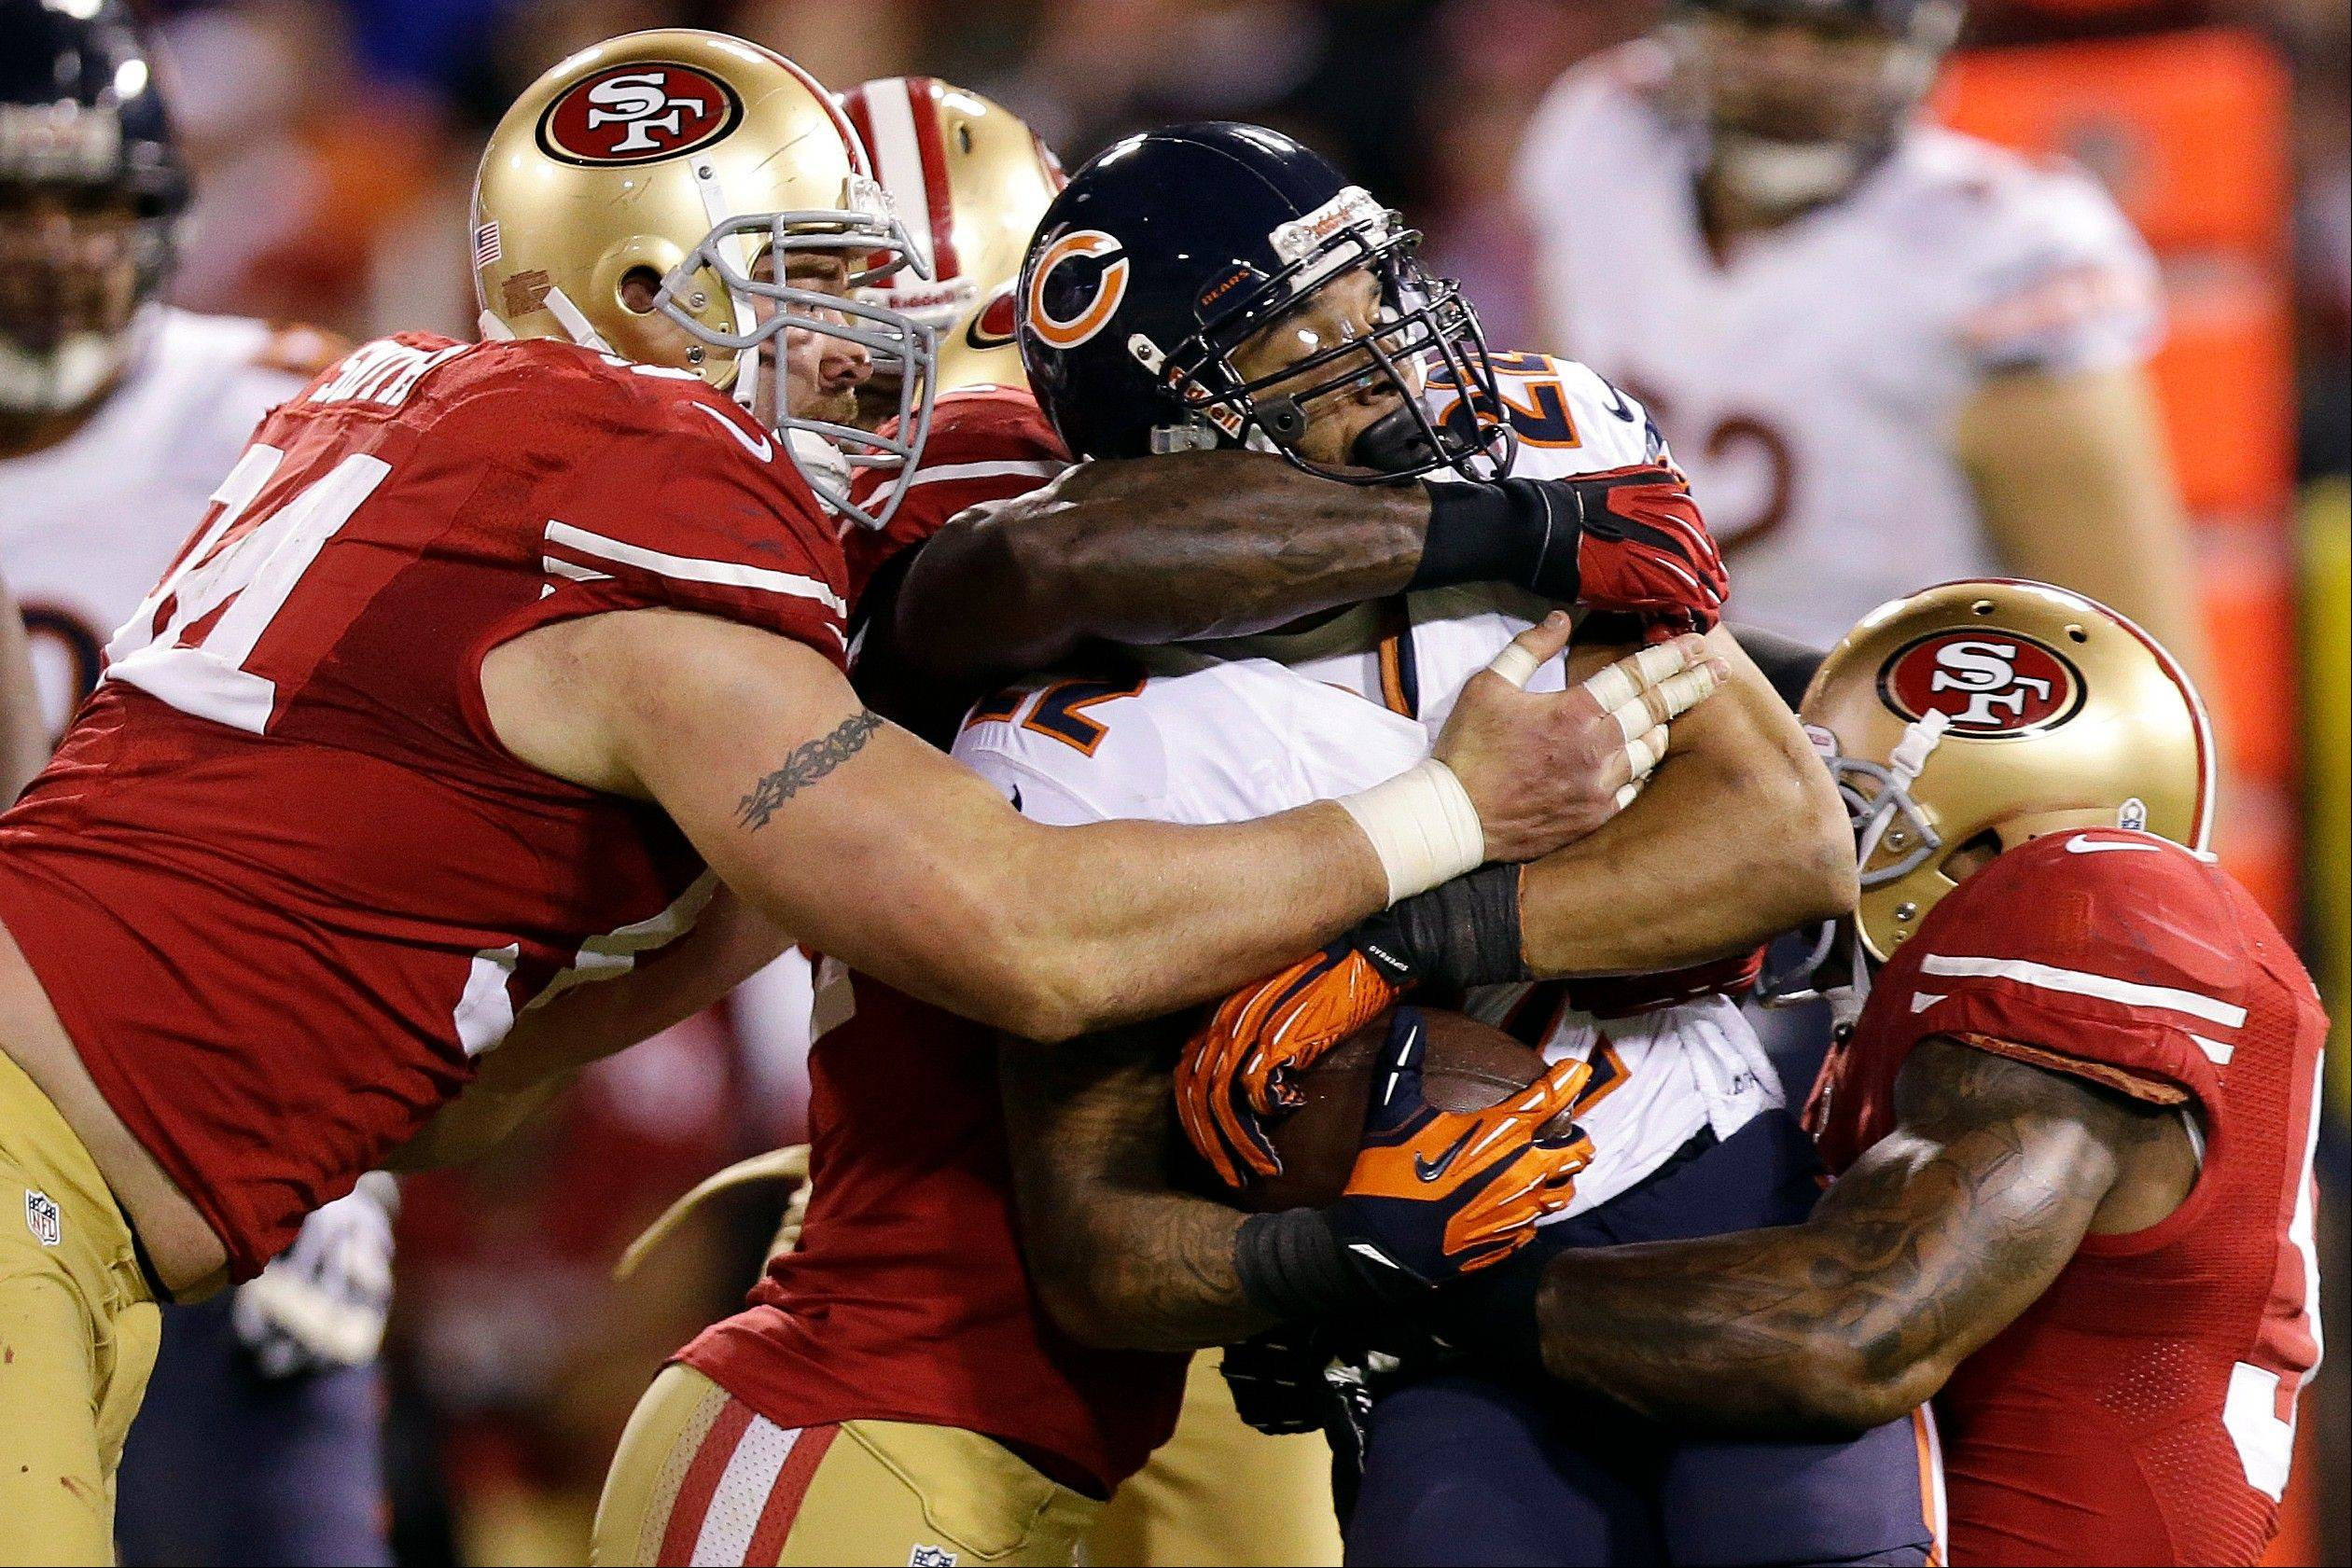 Chicago Bears running back Matt Forte is tackled by San Francisco 49ers defensive tackle Justin Smith, linebacker Patrick Willis, rear, and linebacker NaVorro Bowman during the third quarter.